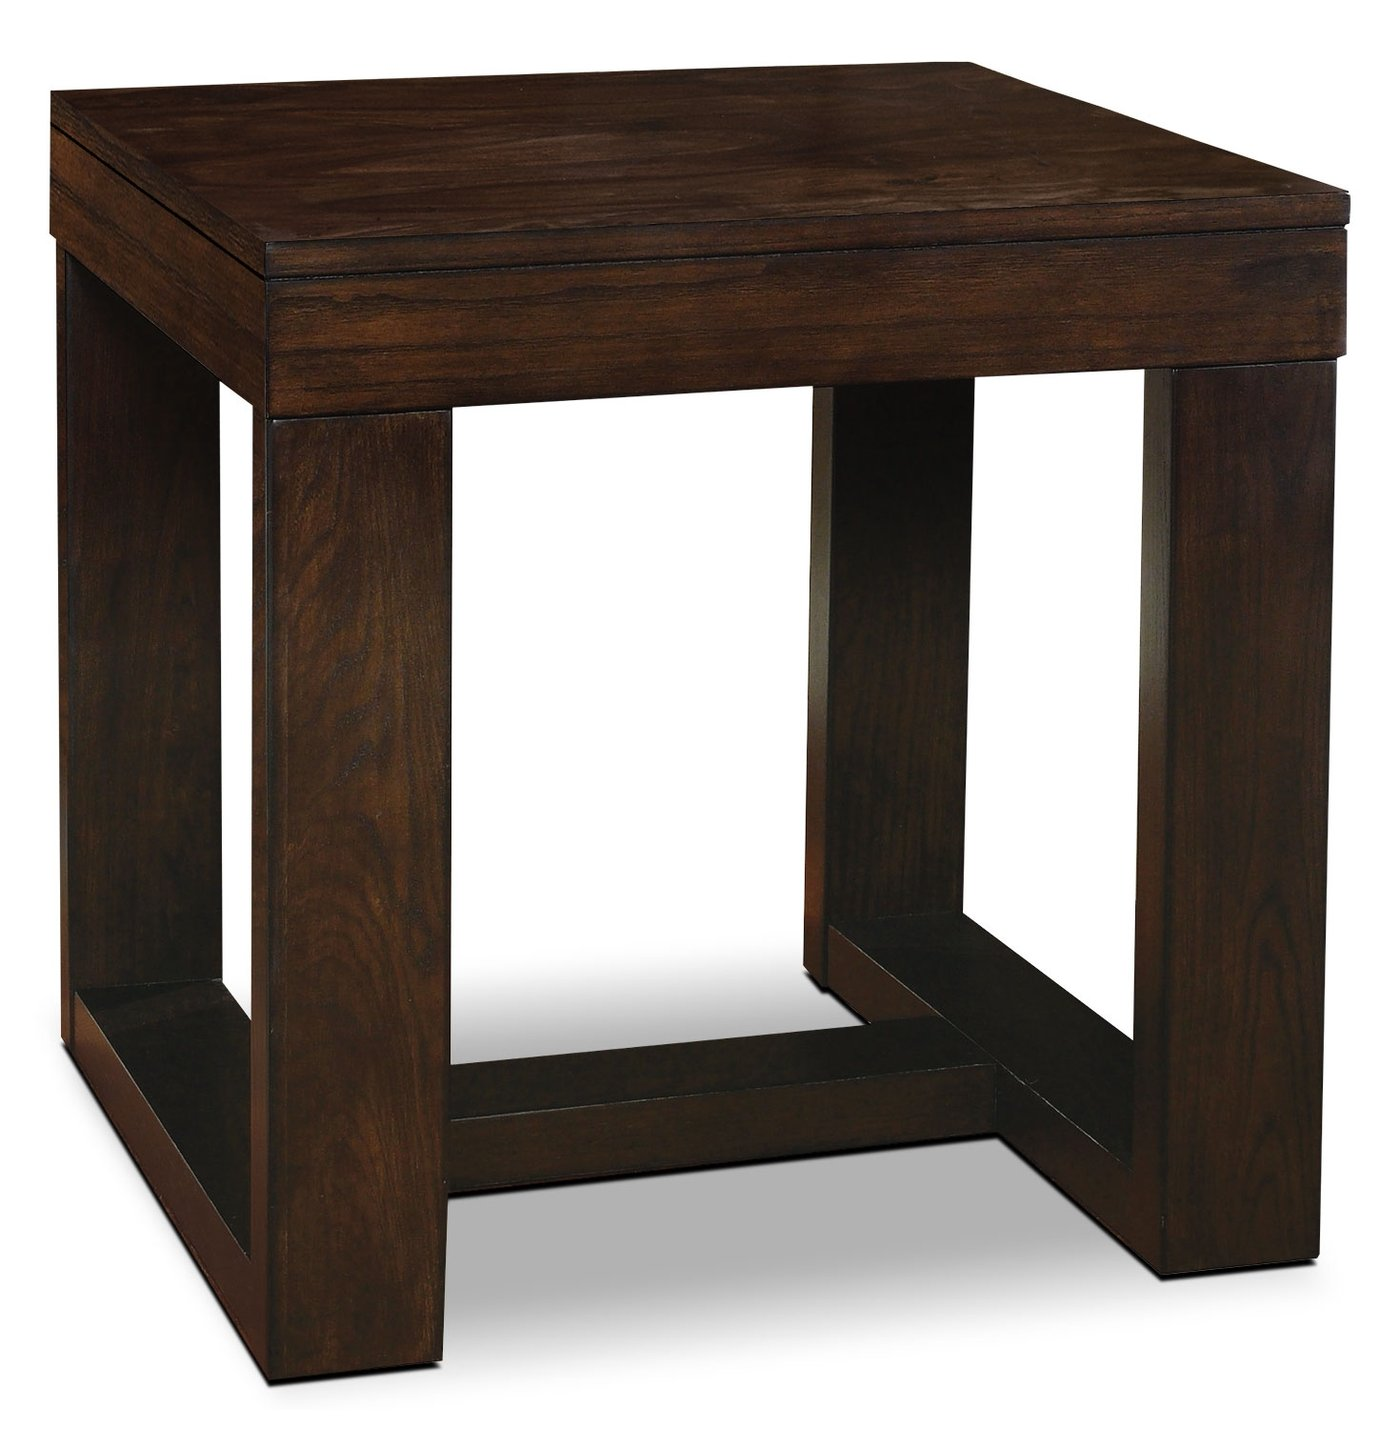 watson end table the brick smzixjatxedpocvwywpt coffee and tables tap expand powell two door console light accents floor lamp kmart exercise equipment wooden crate black pipe